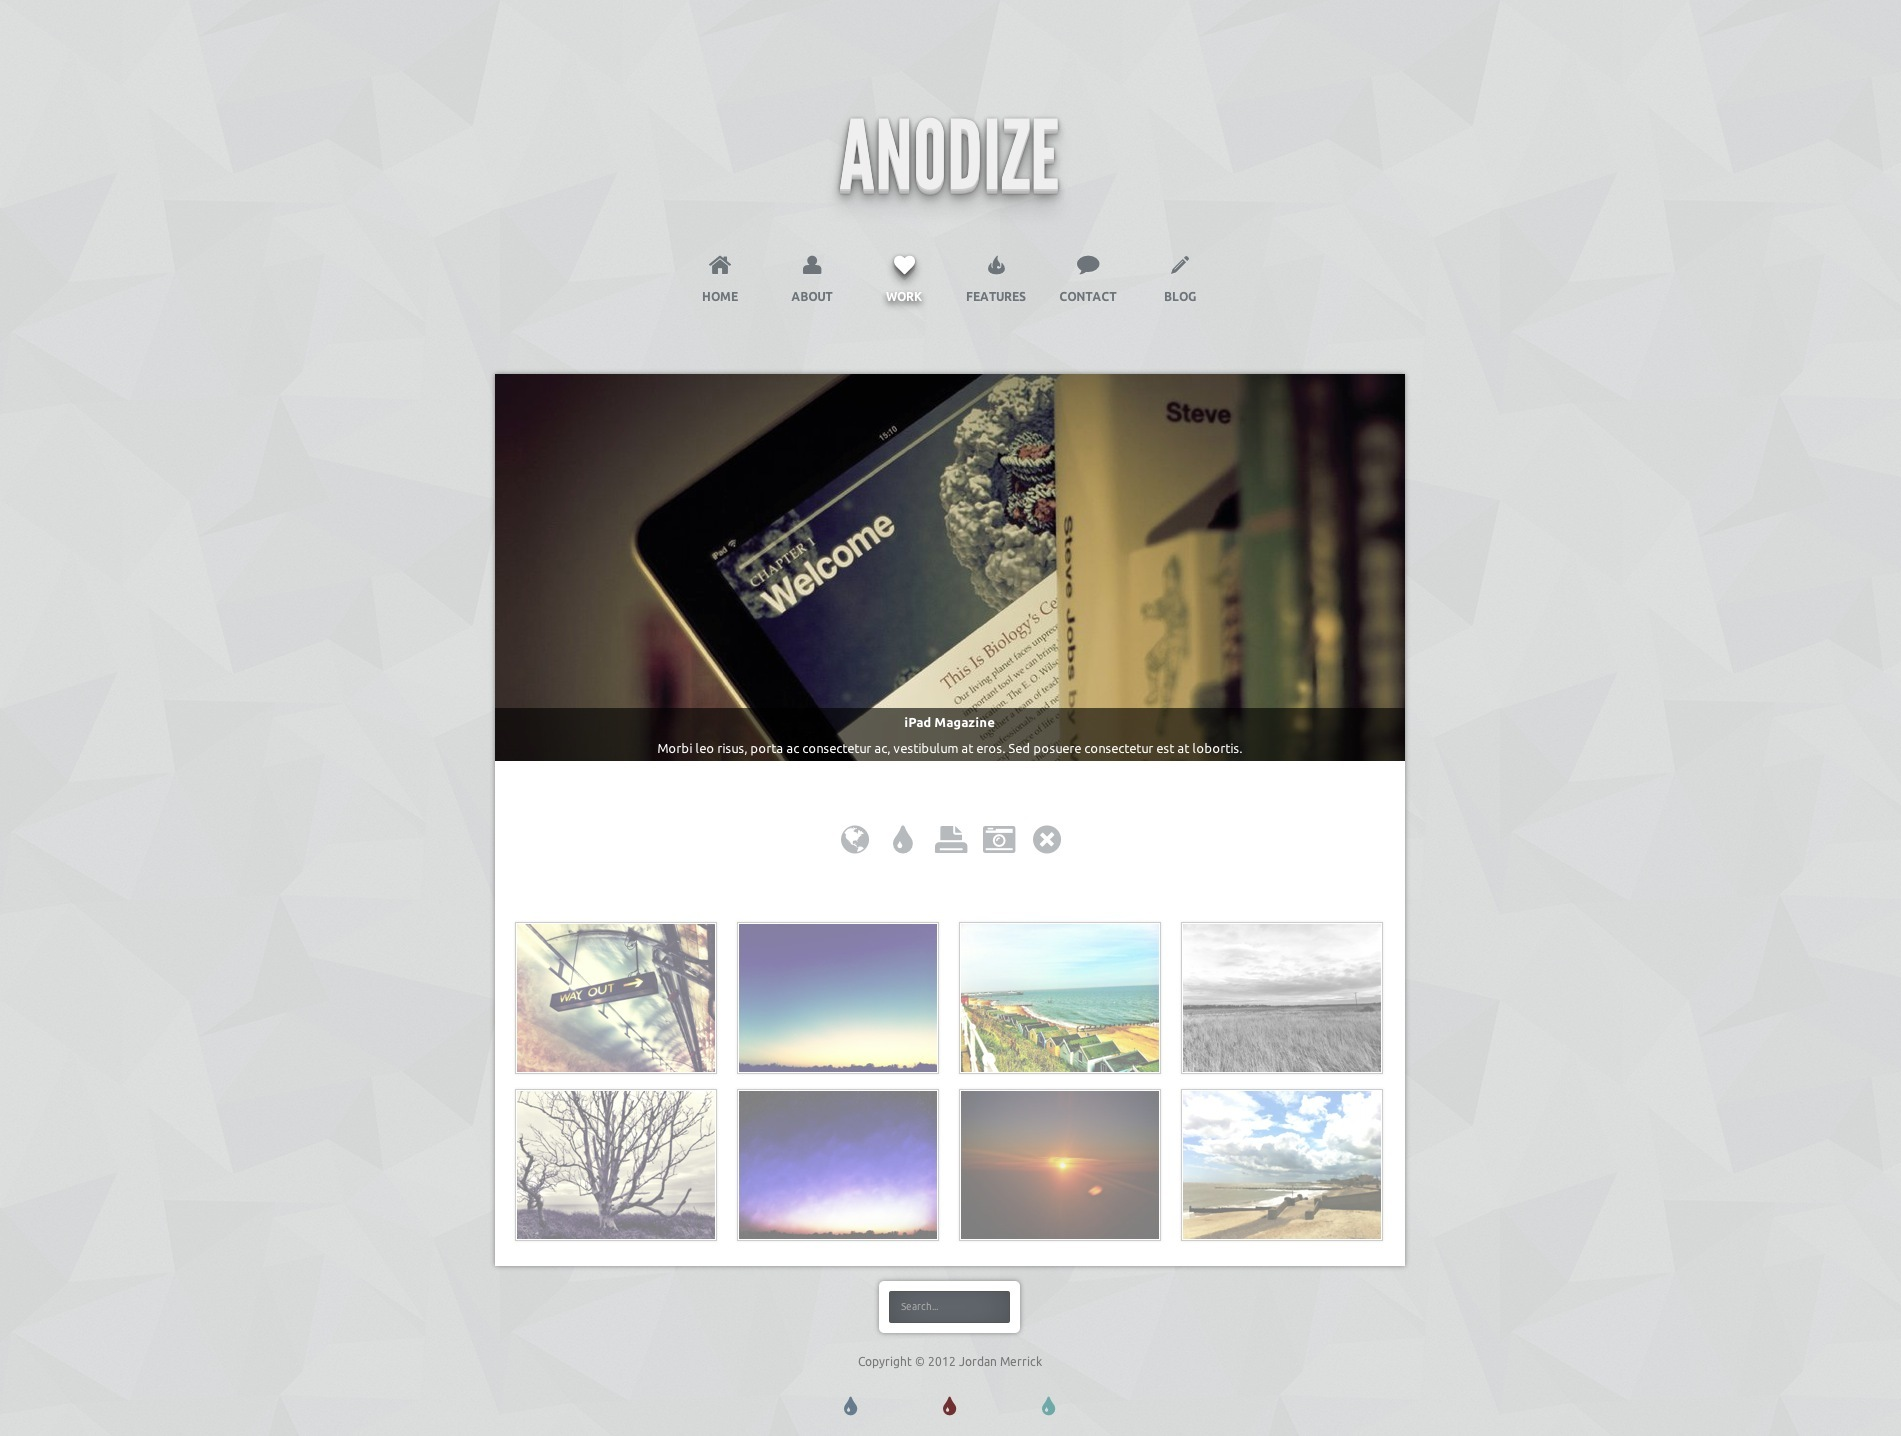 Anodize - A Responsive HTML5 Template